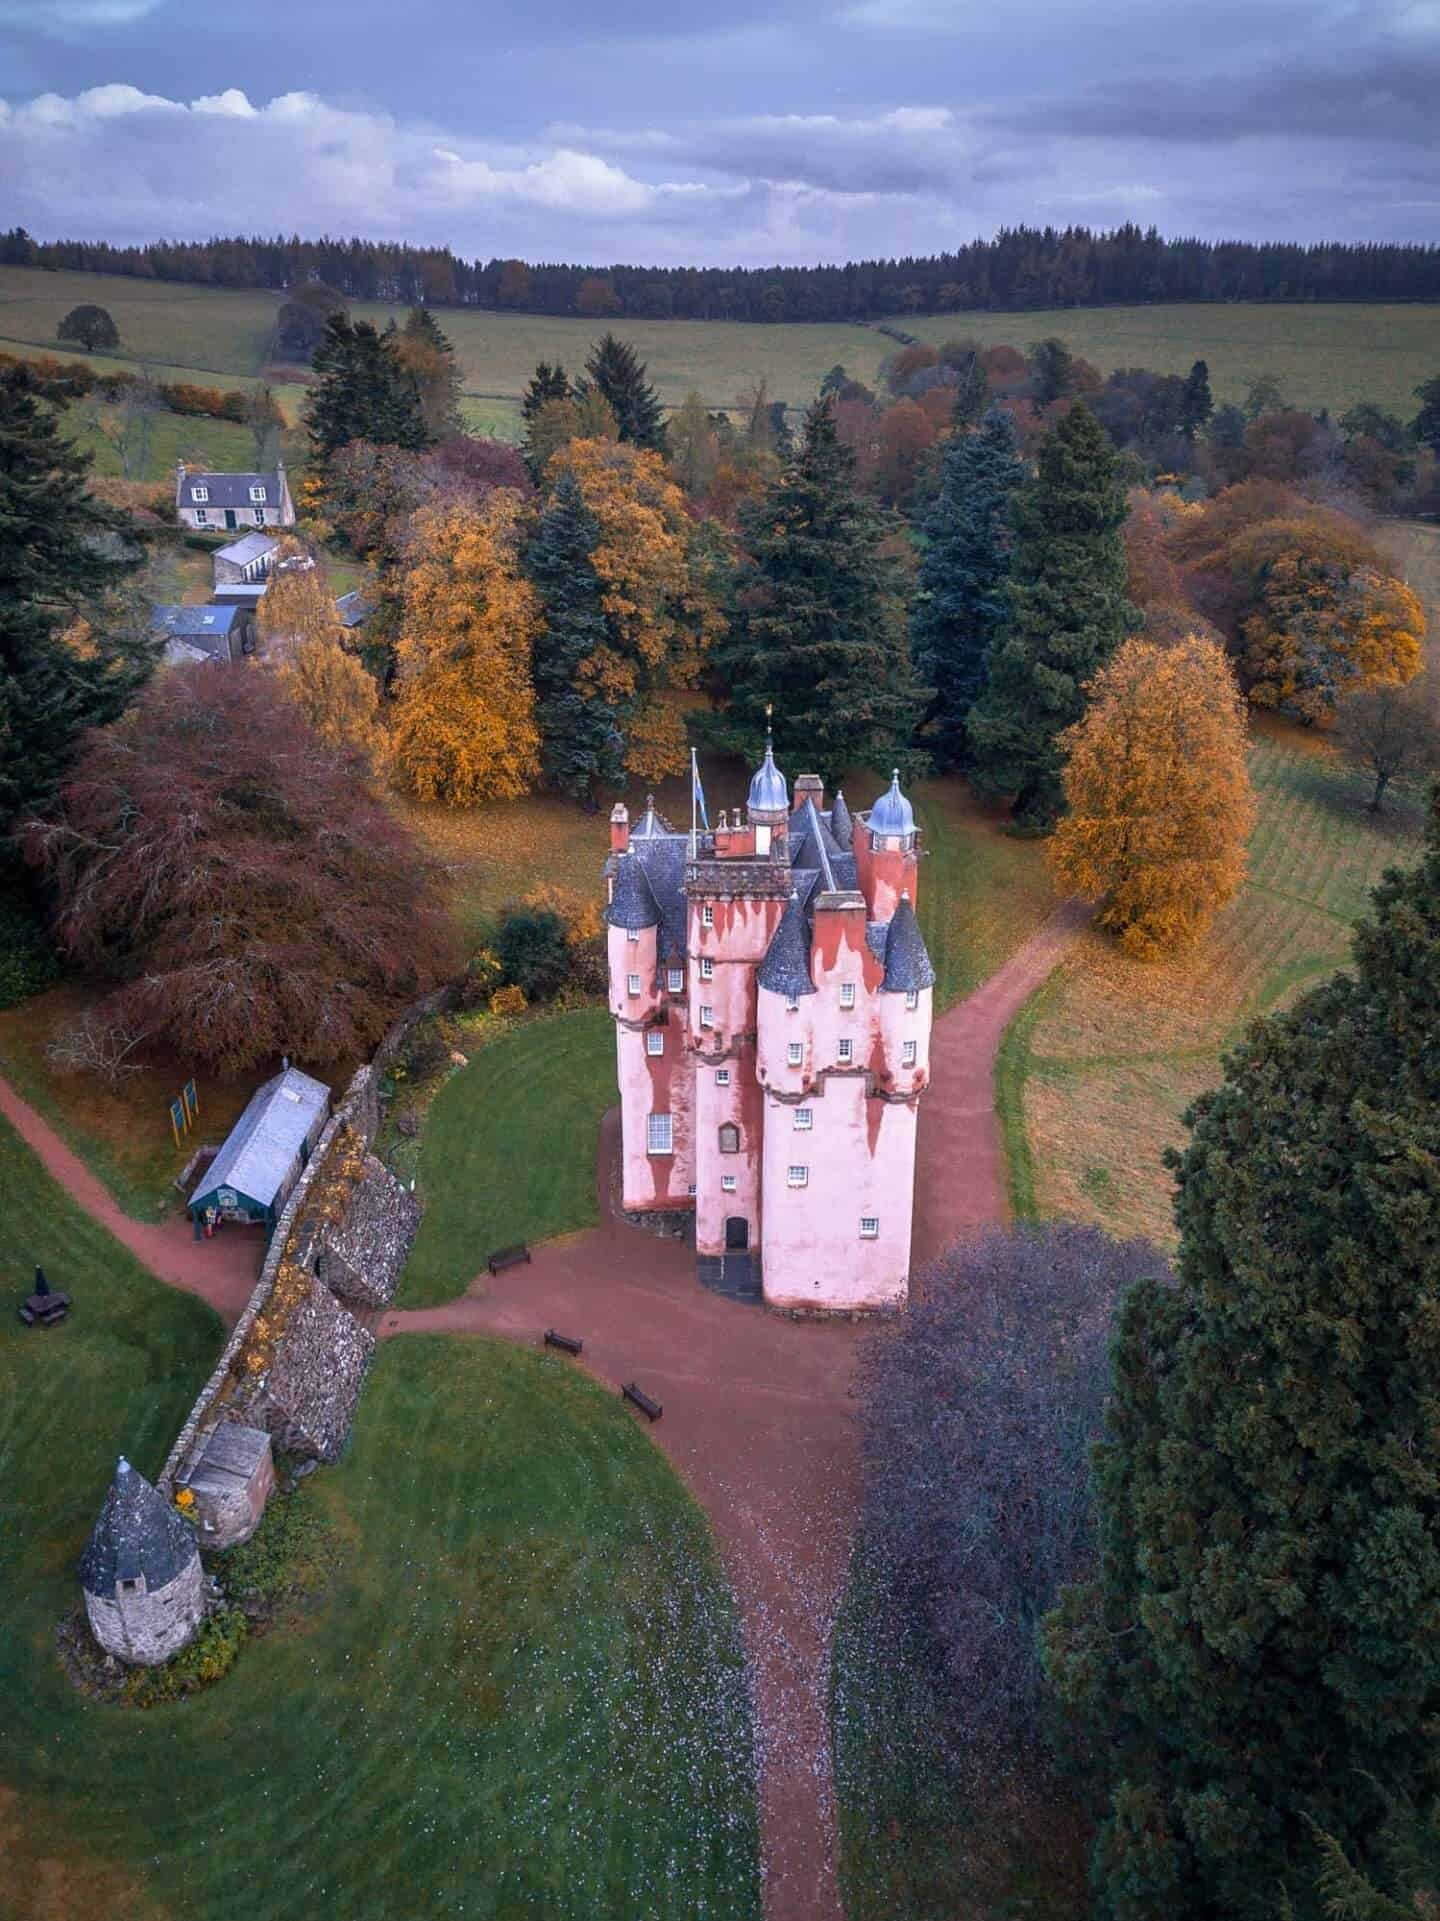 Craigievar Castle as viewed from above with autumn foliage surrounding it.